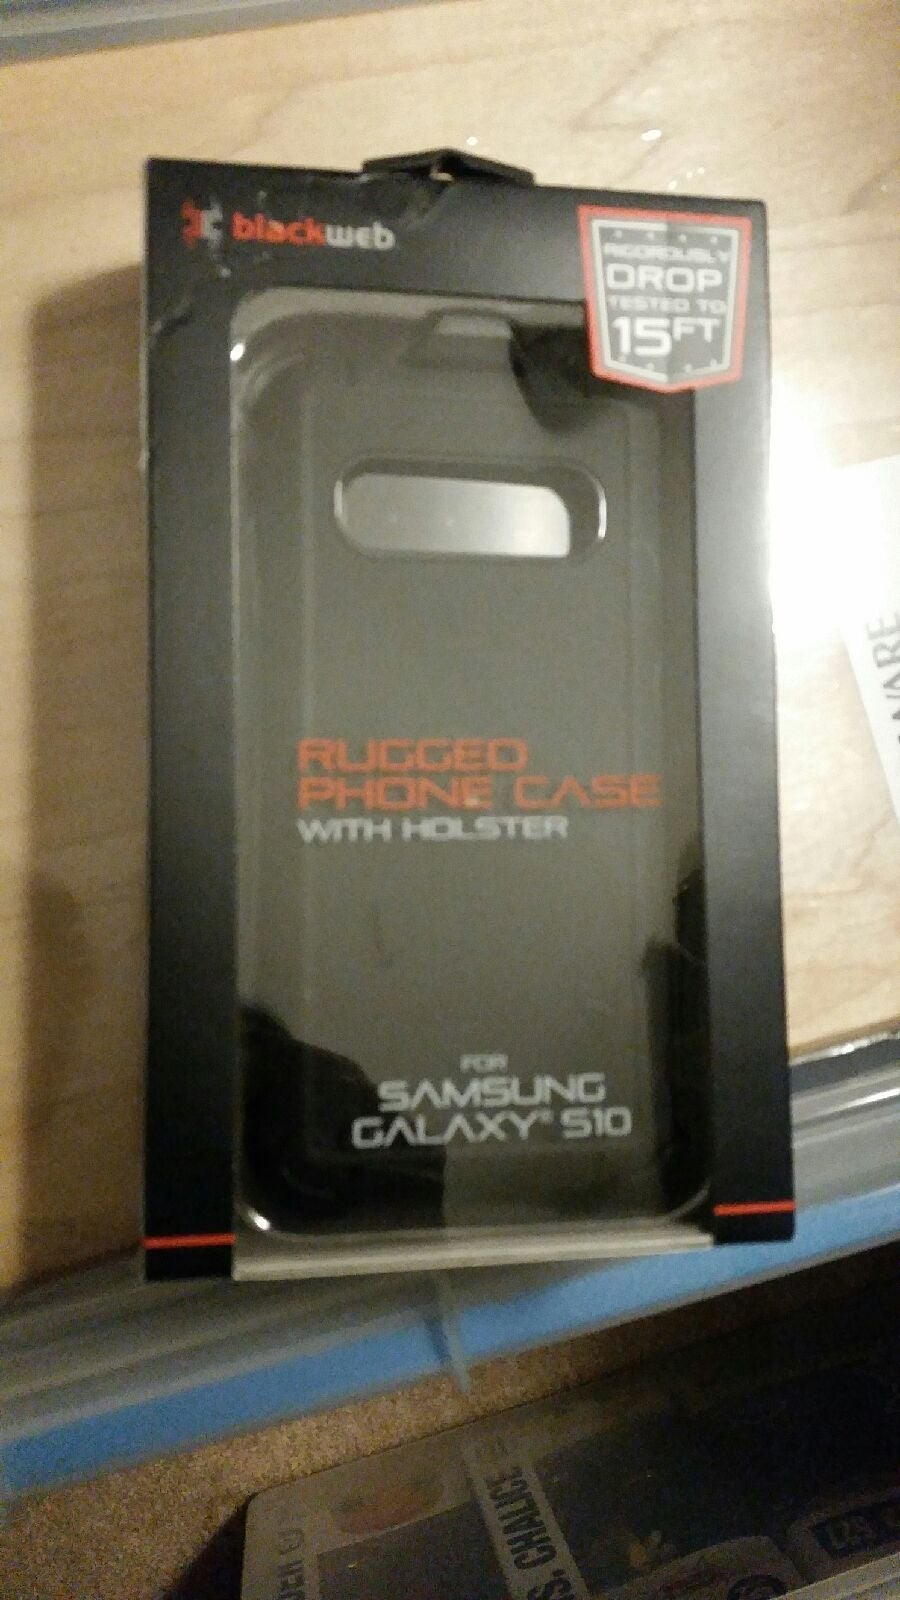 Rugged phone case for Samsung Galaxy S10